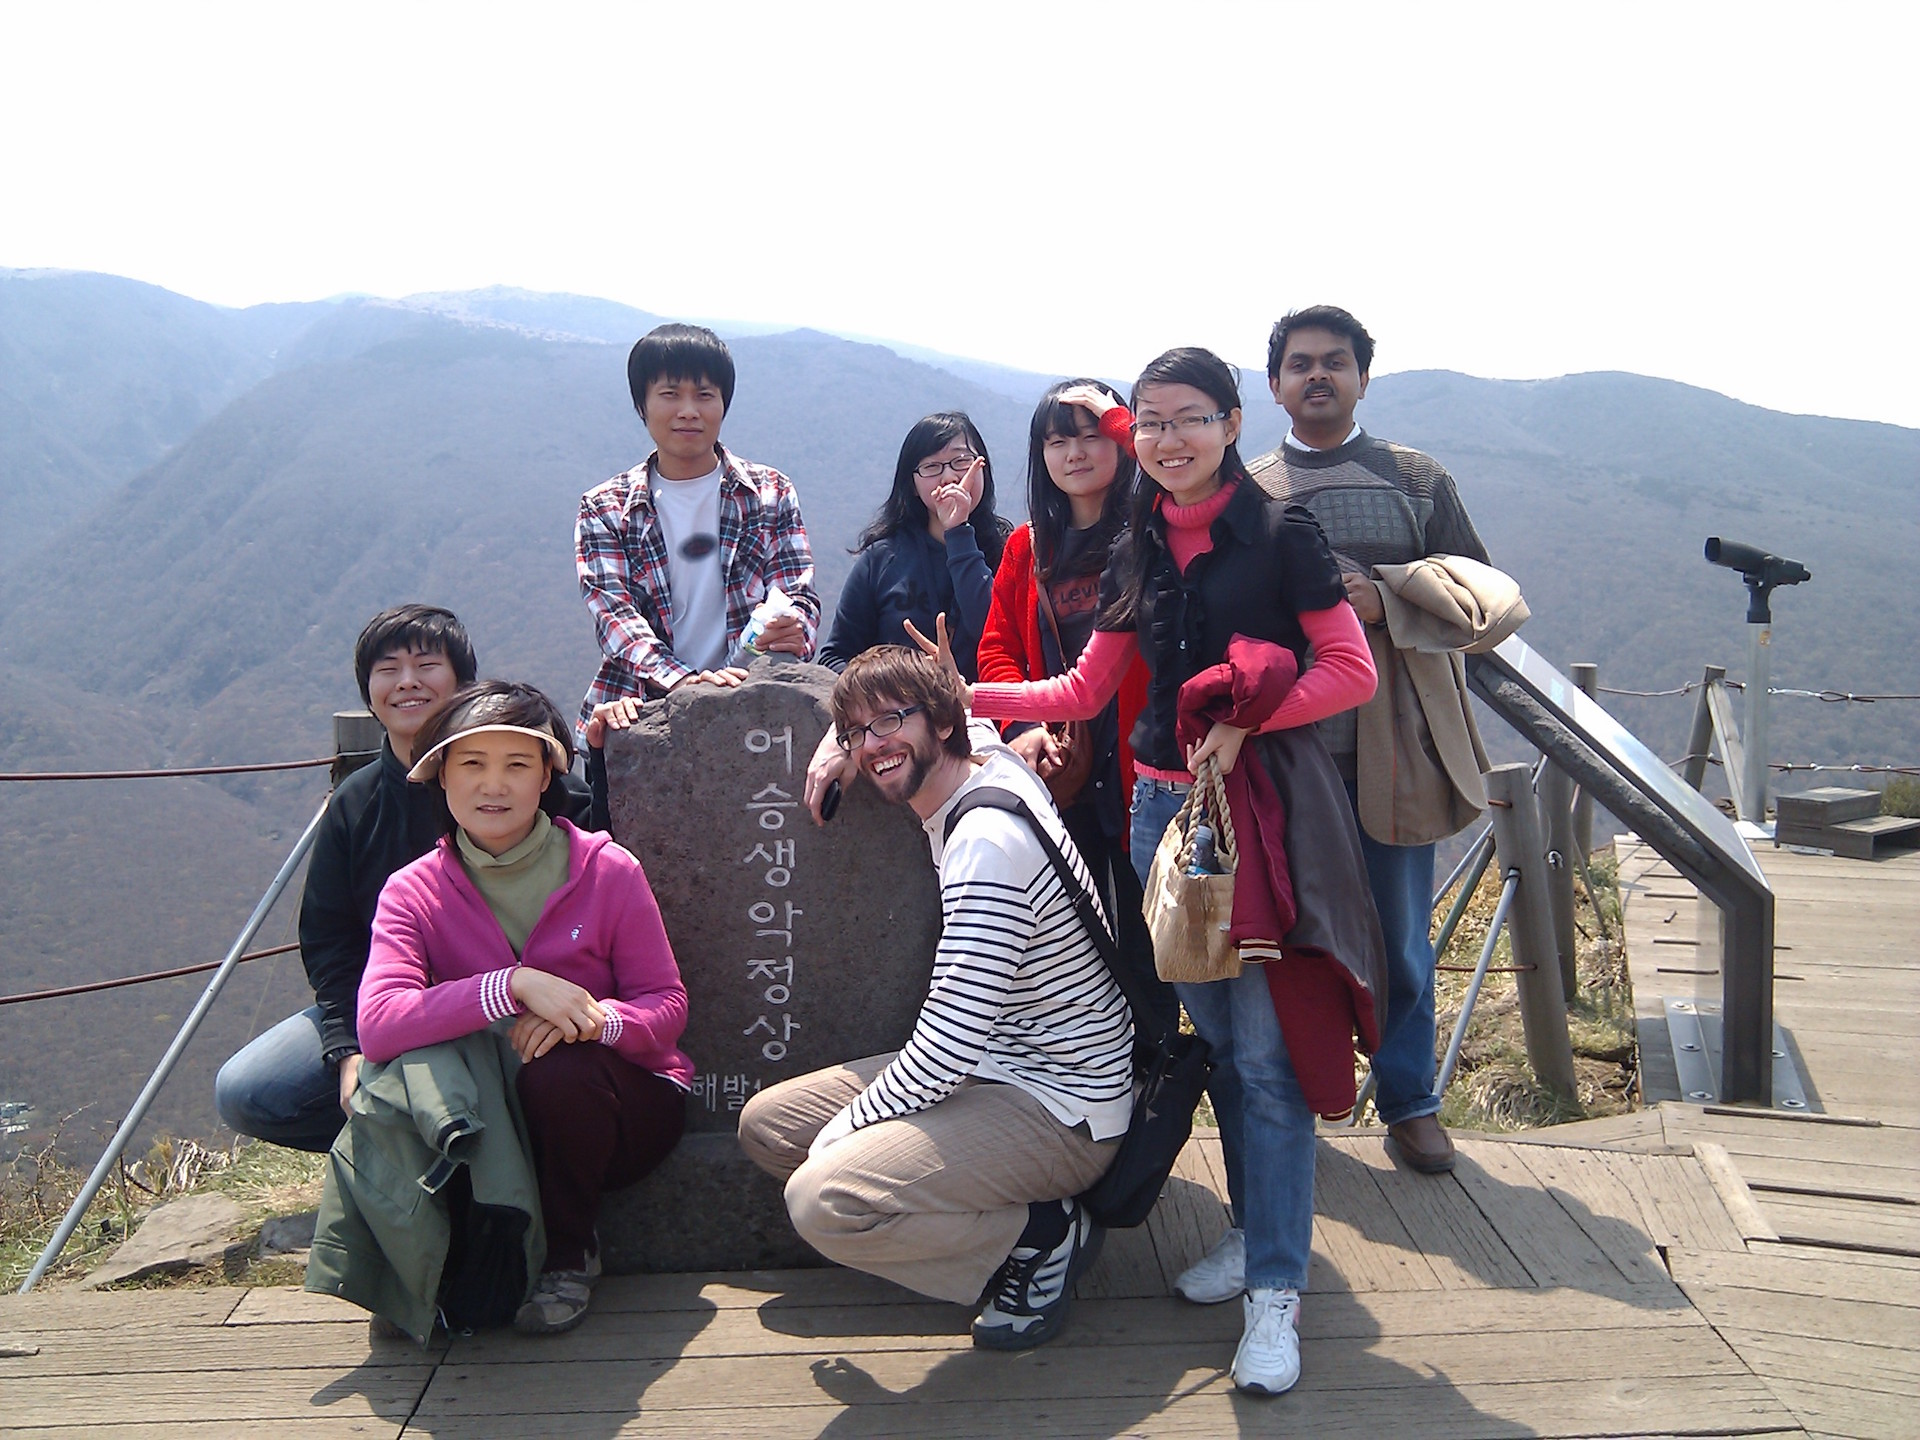 Hiking in Jeju island with students and colleagues